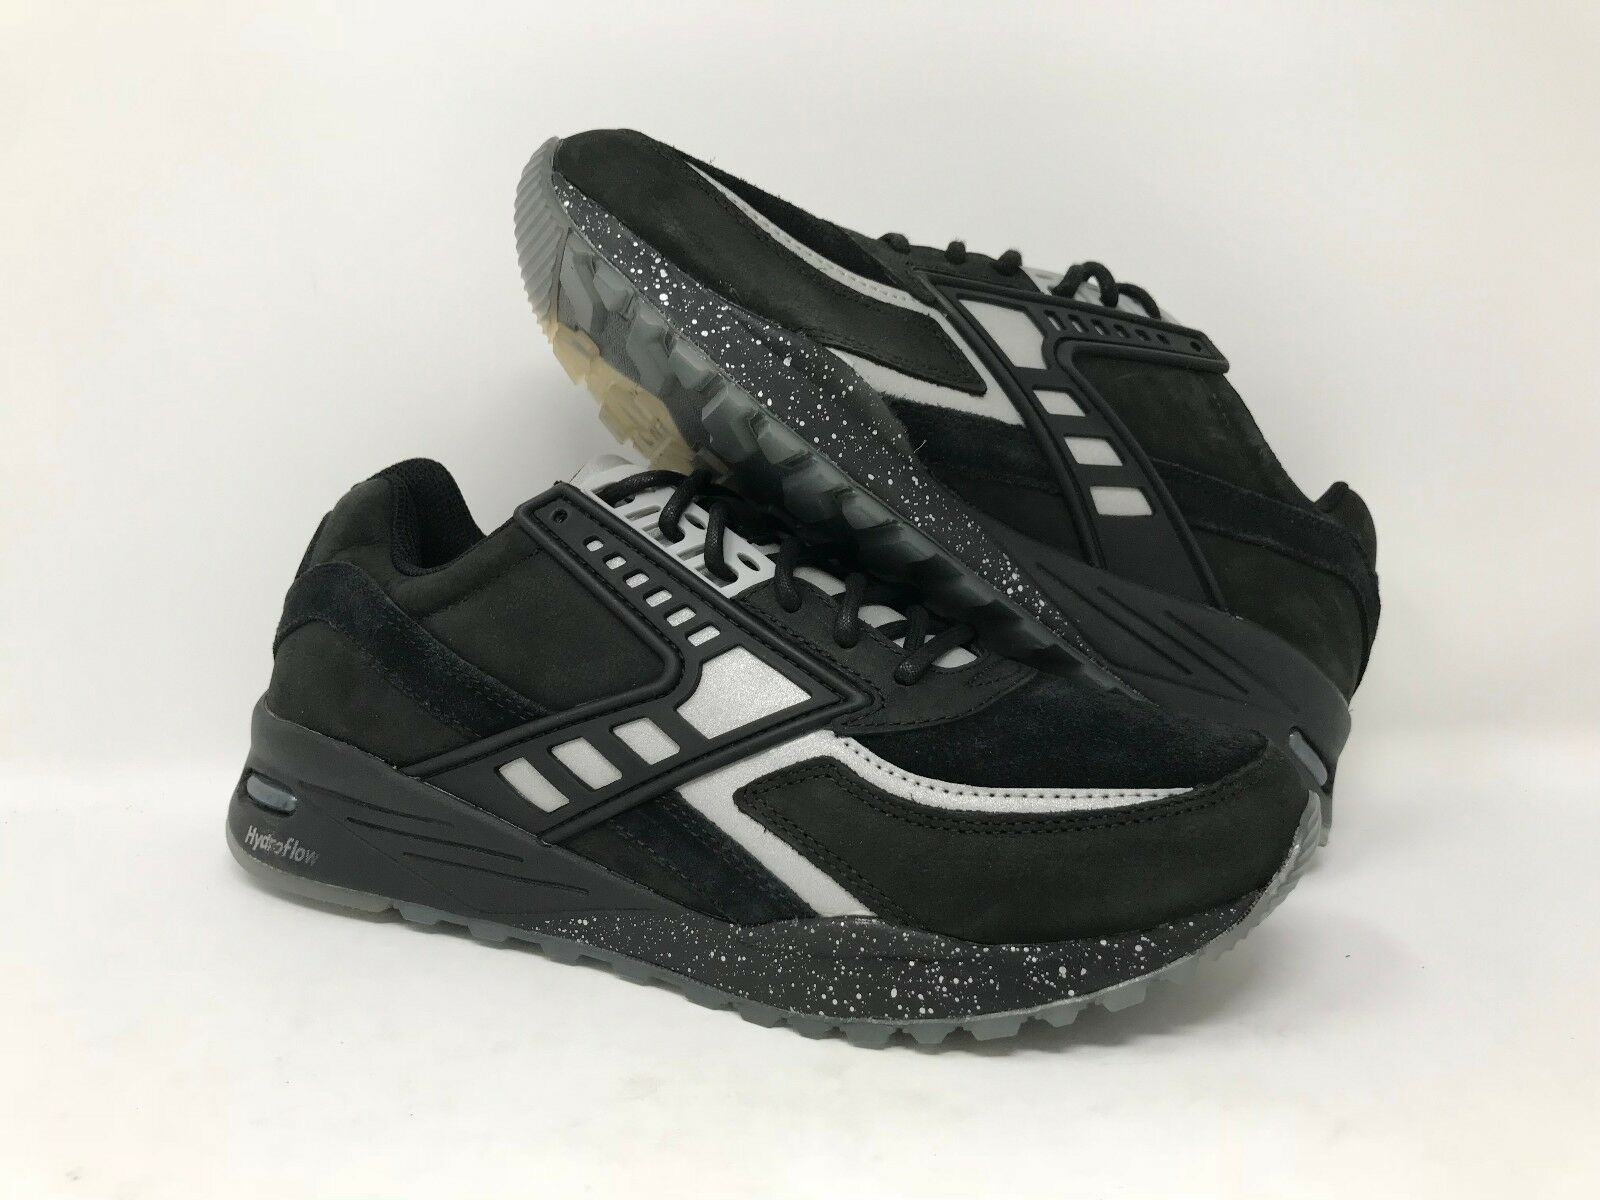 BROOKS FAIRPLAY BATTLE OF LOS ANGELES BLACK REFLECTIVE MEN'S SIZE 9 WOB